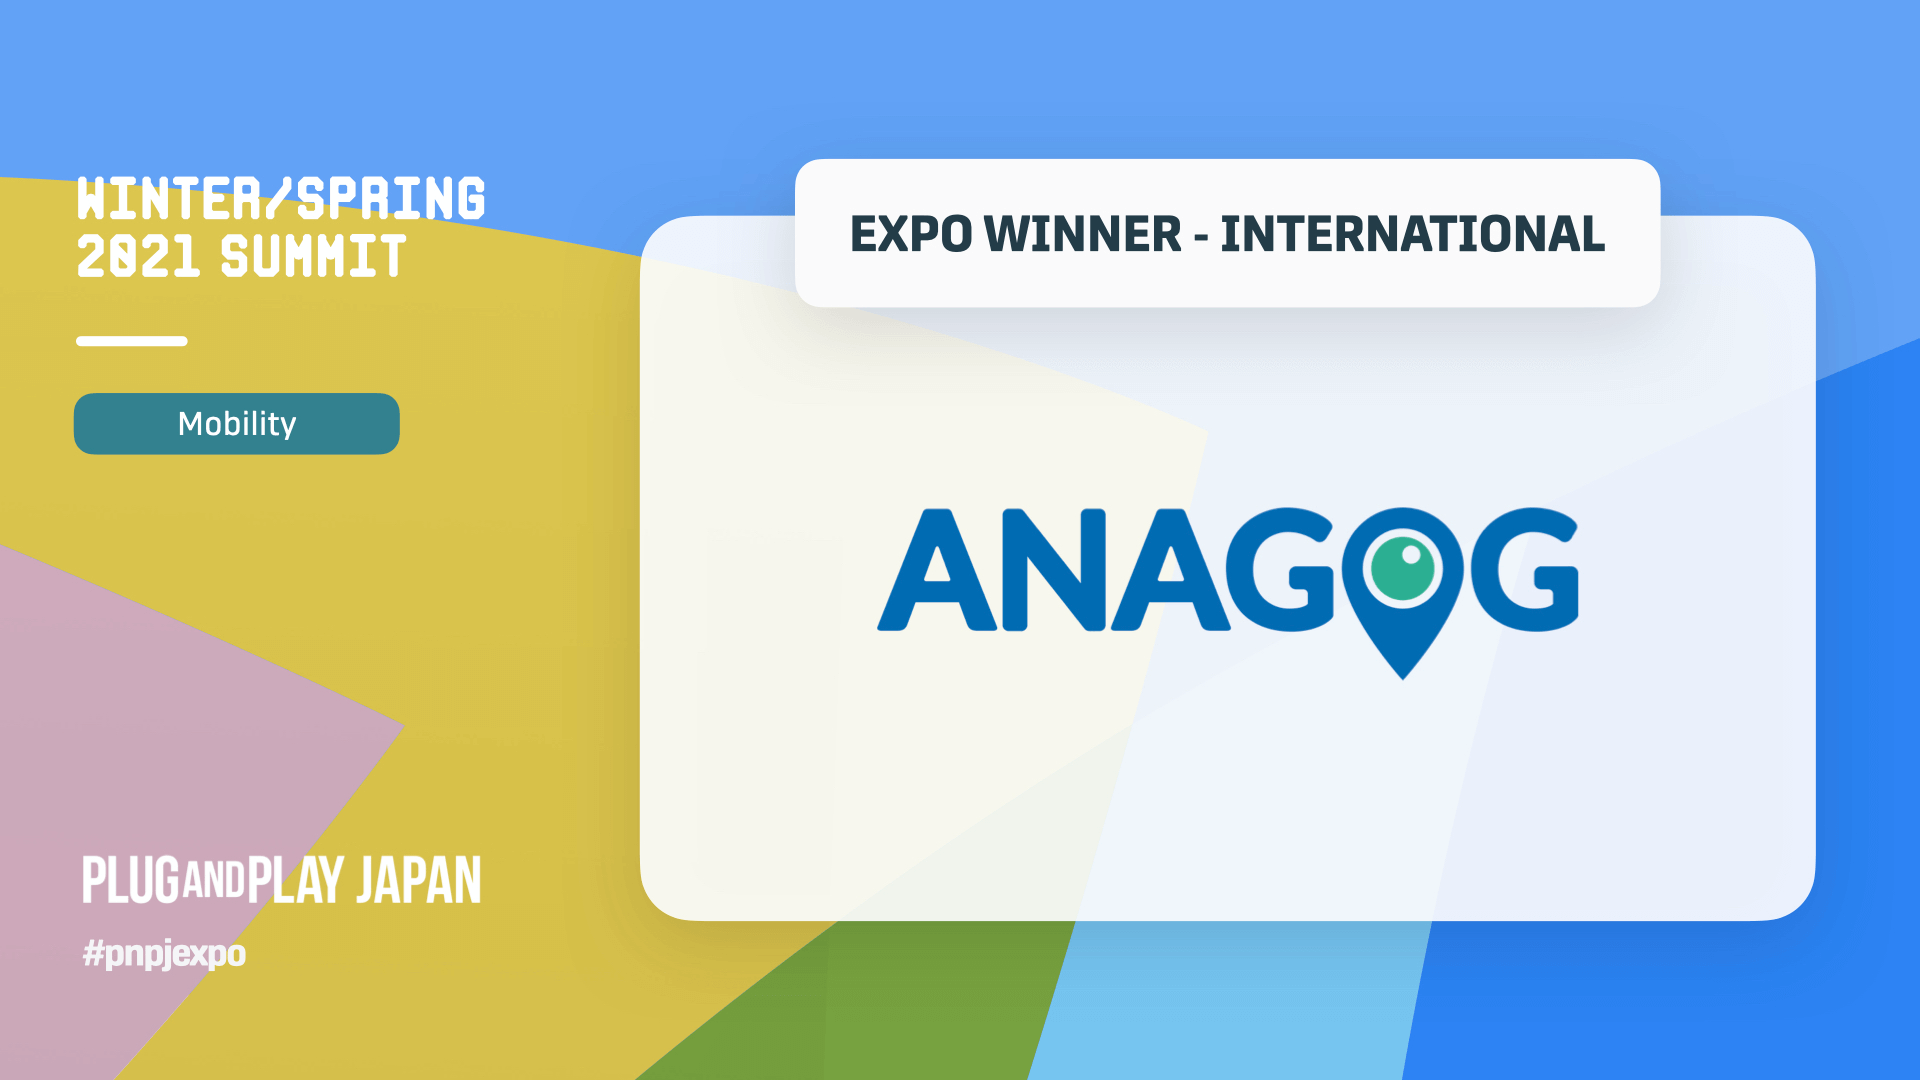 Plug and Play Expo International Pitch Winners